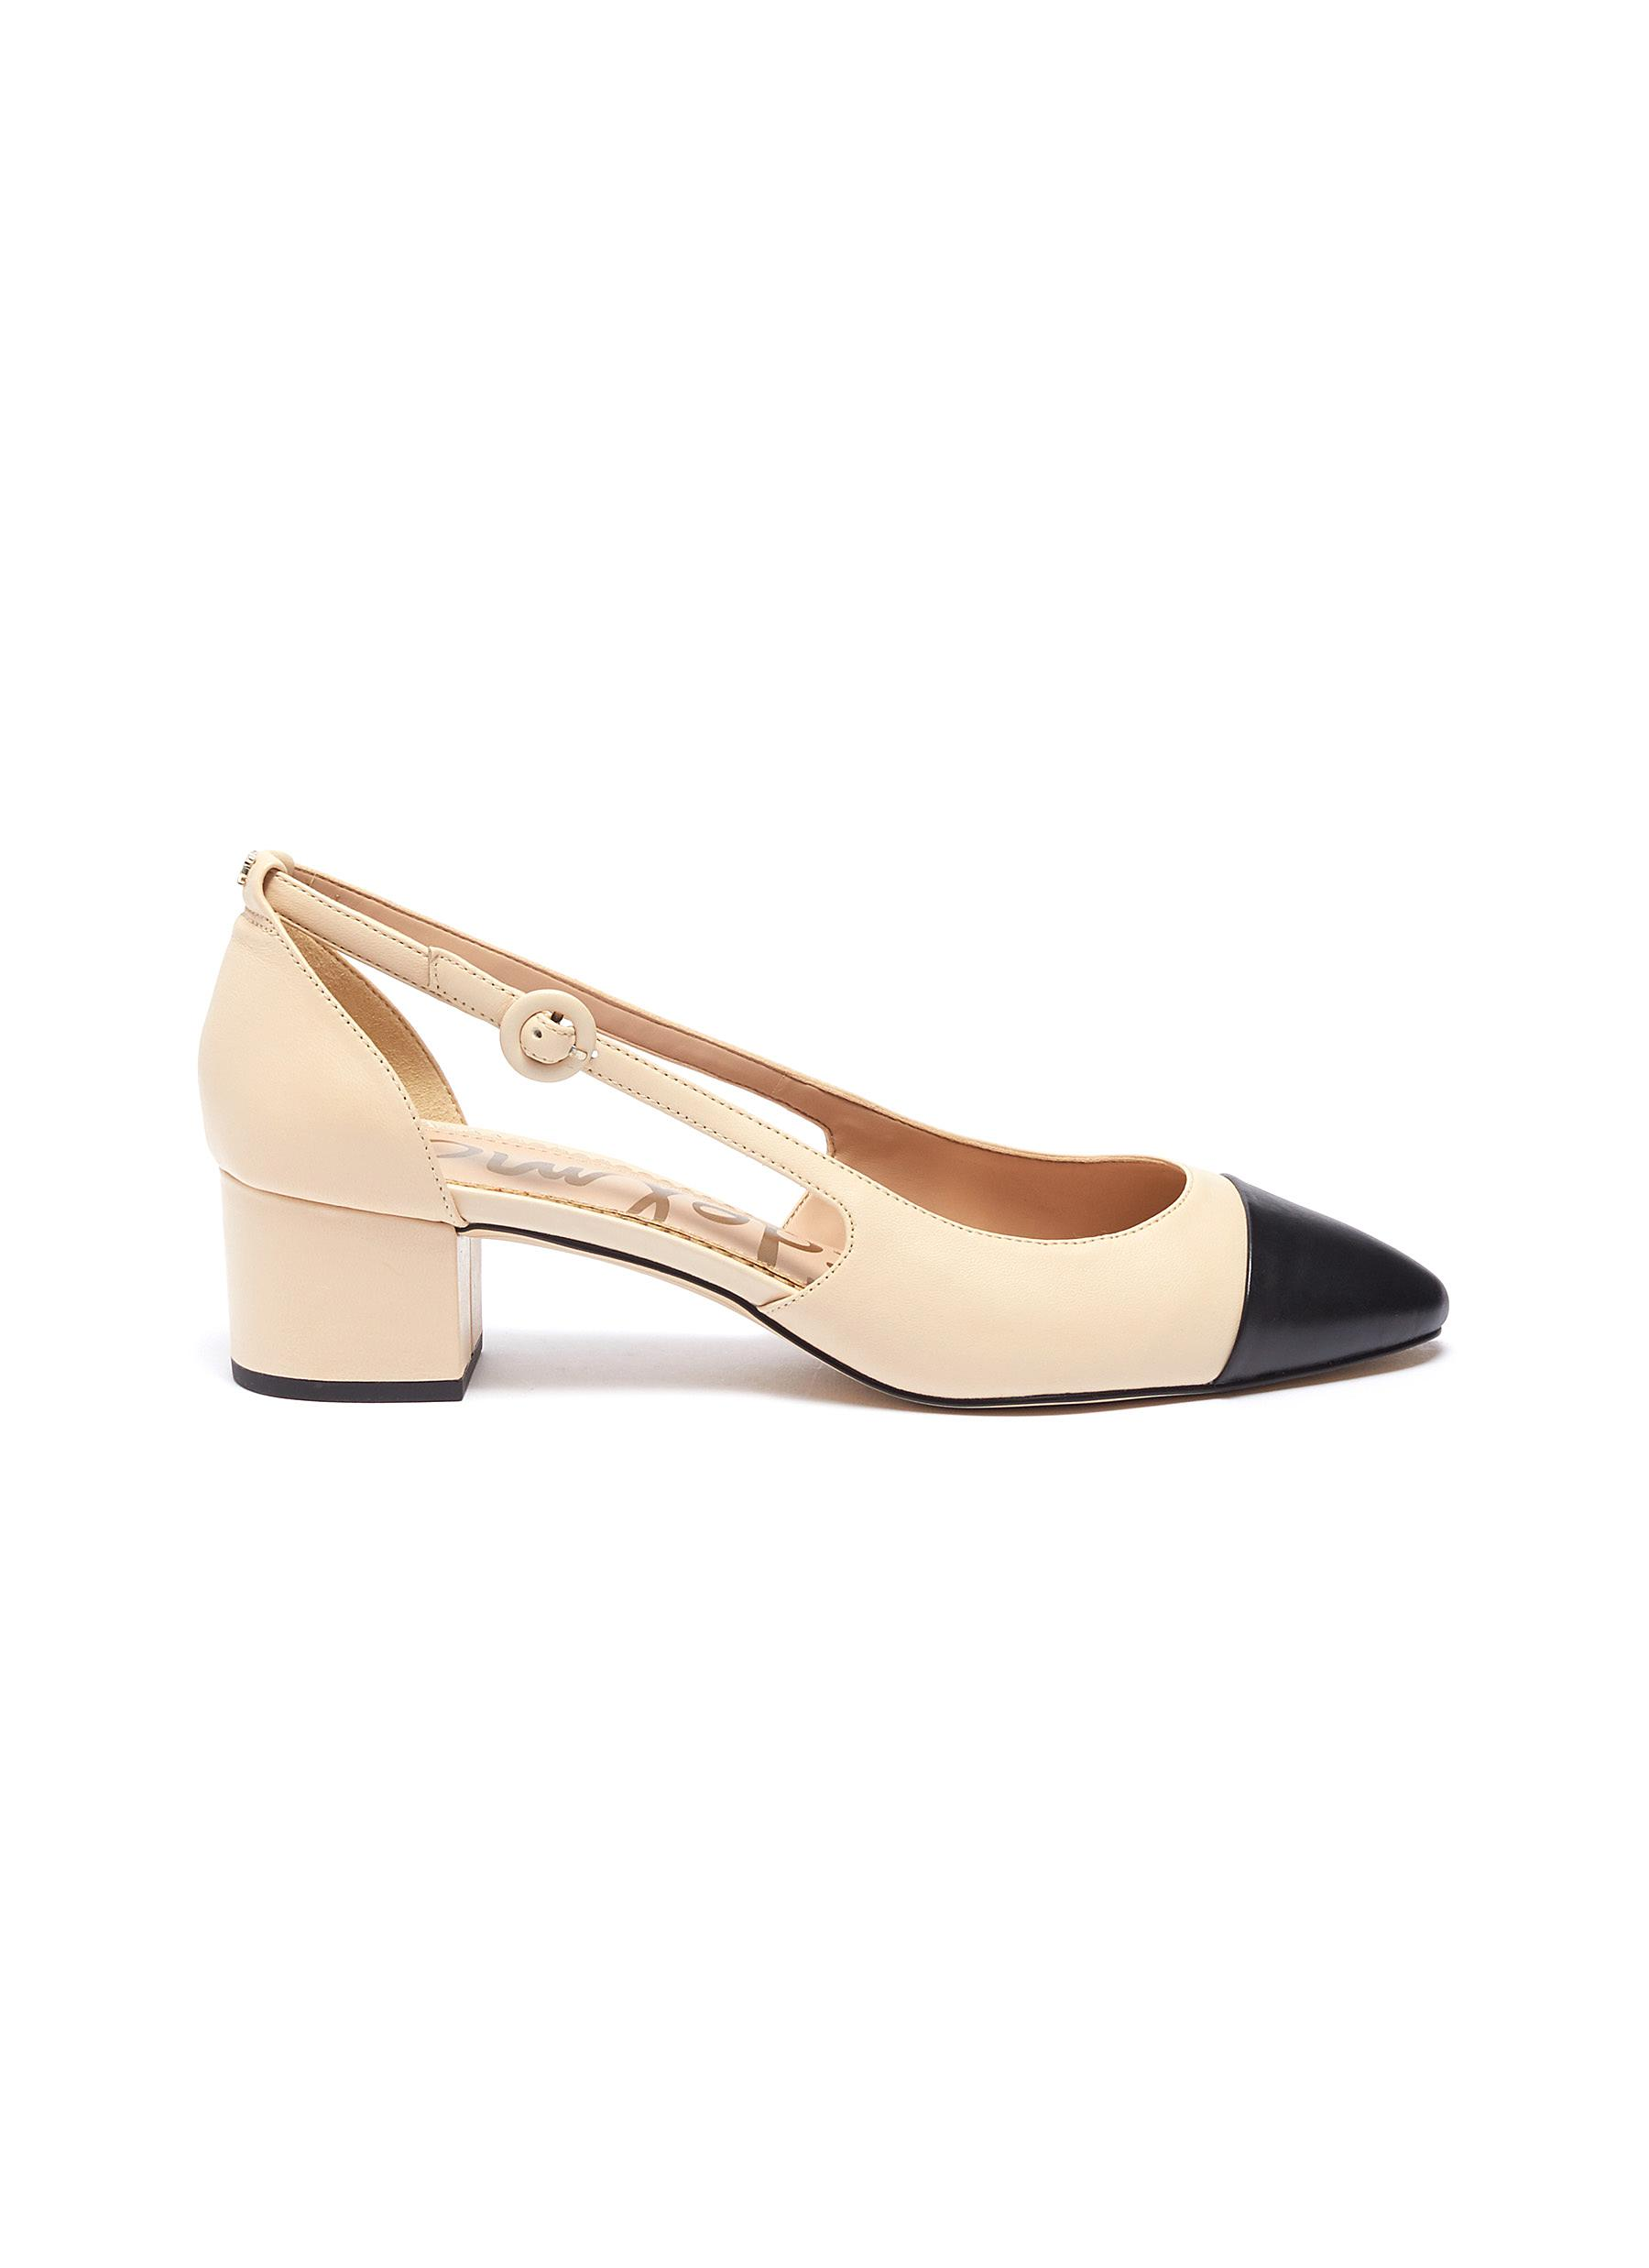 Leah contrast toe cap cutout leather pumps by Sam Edelman